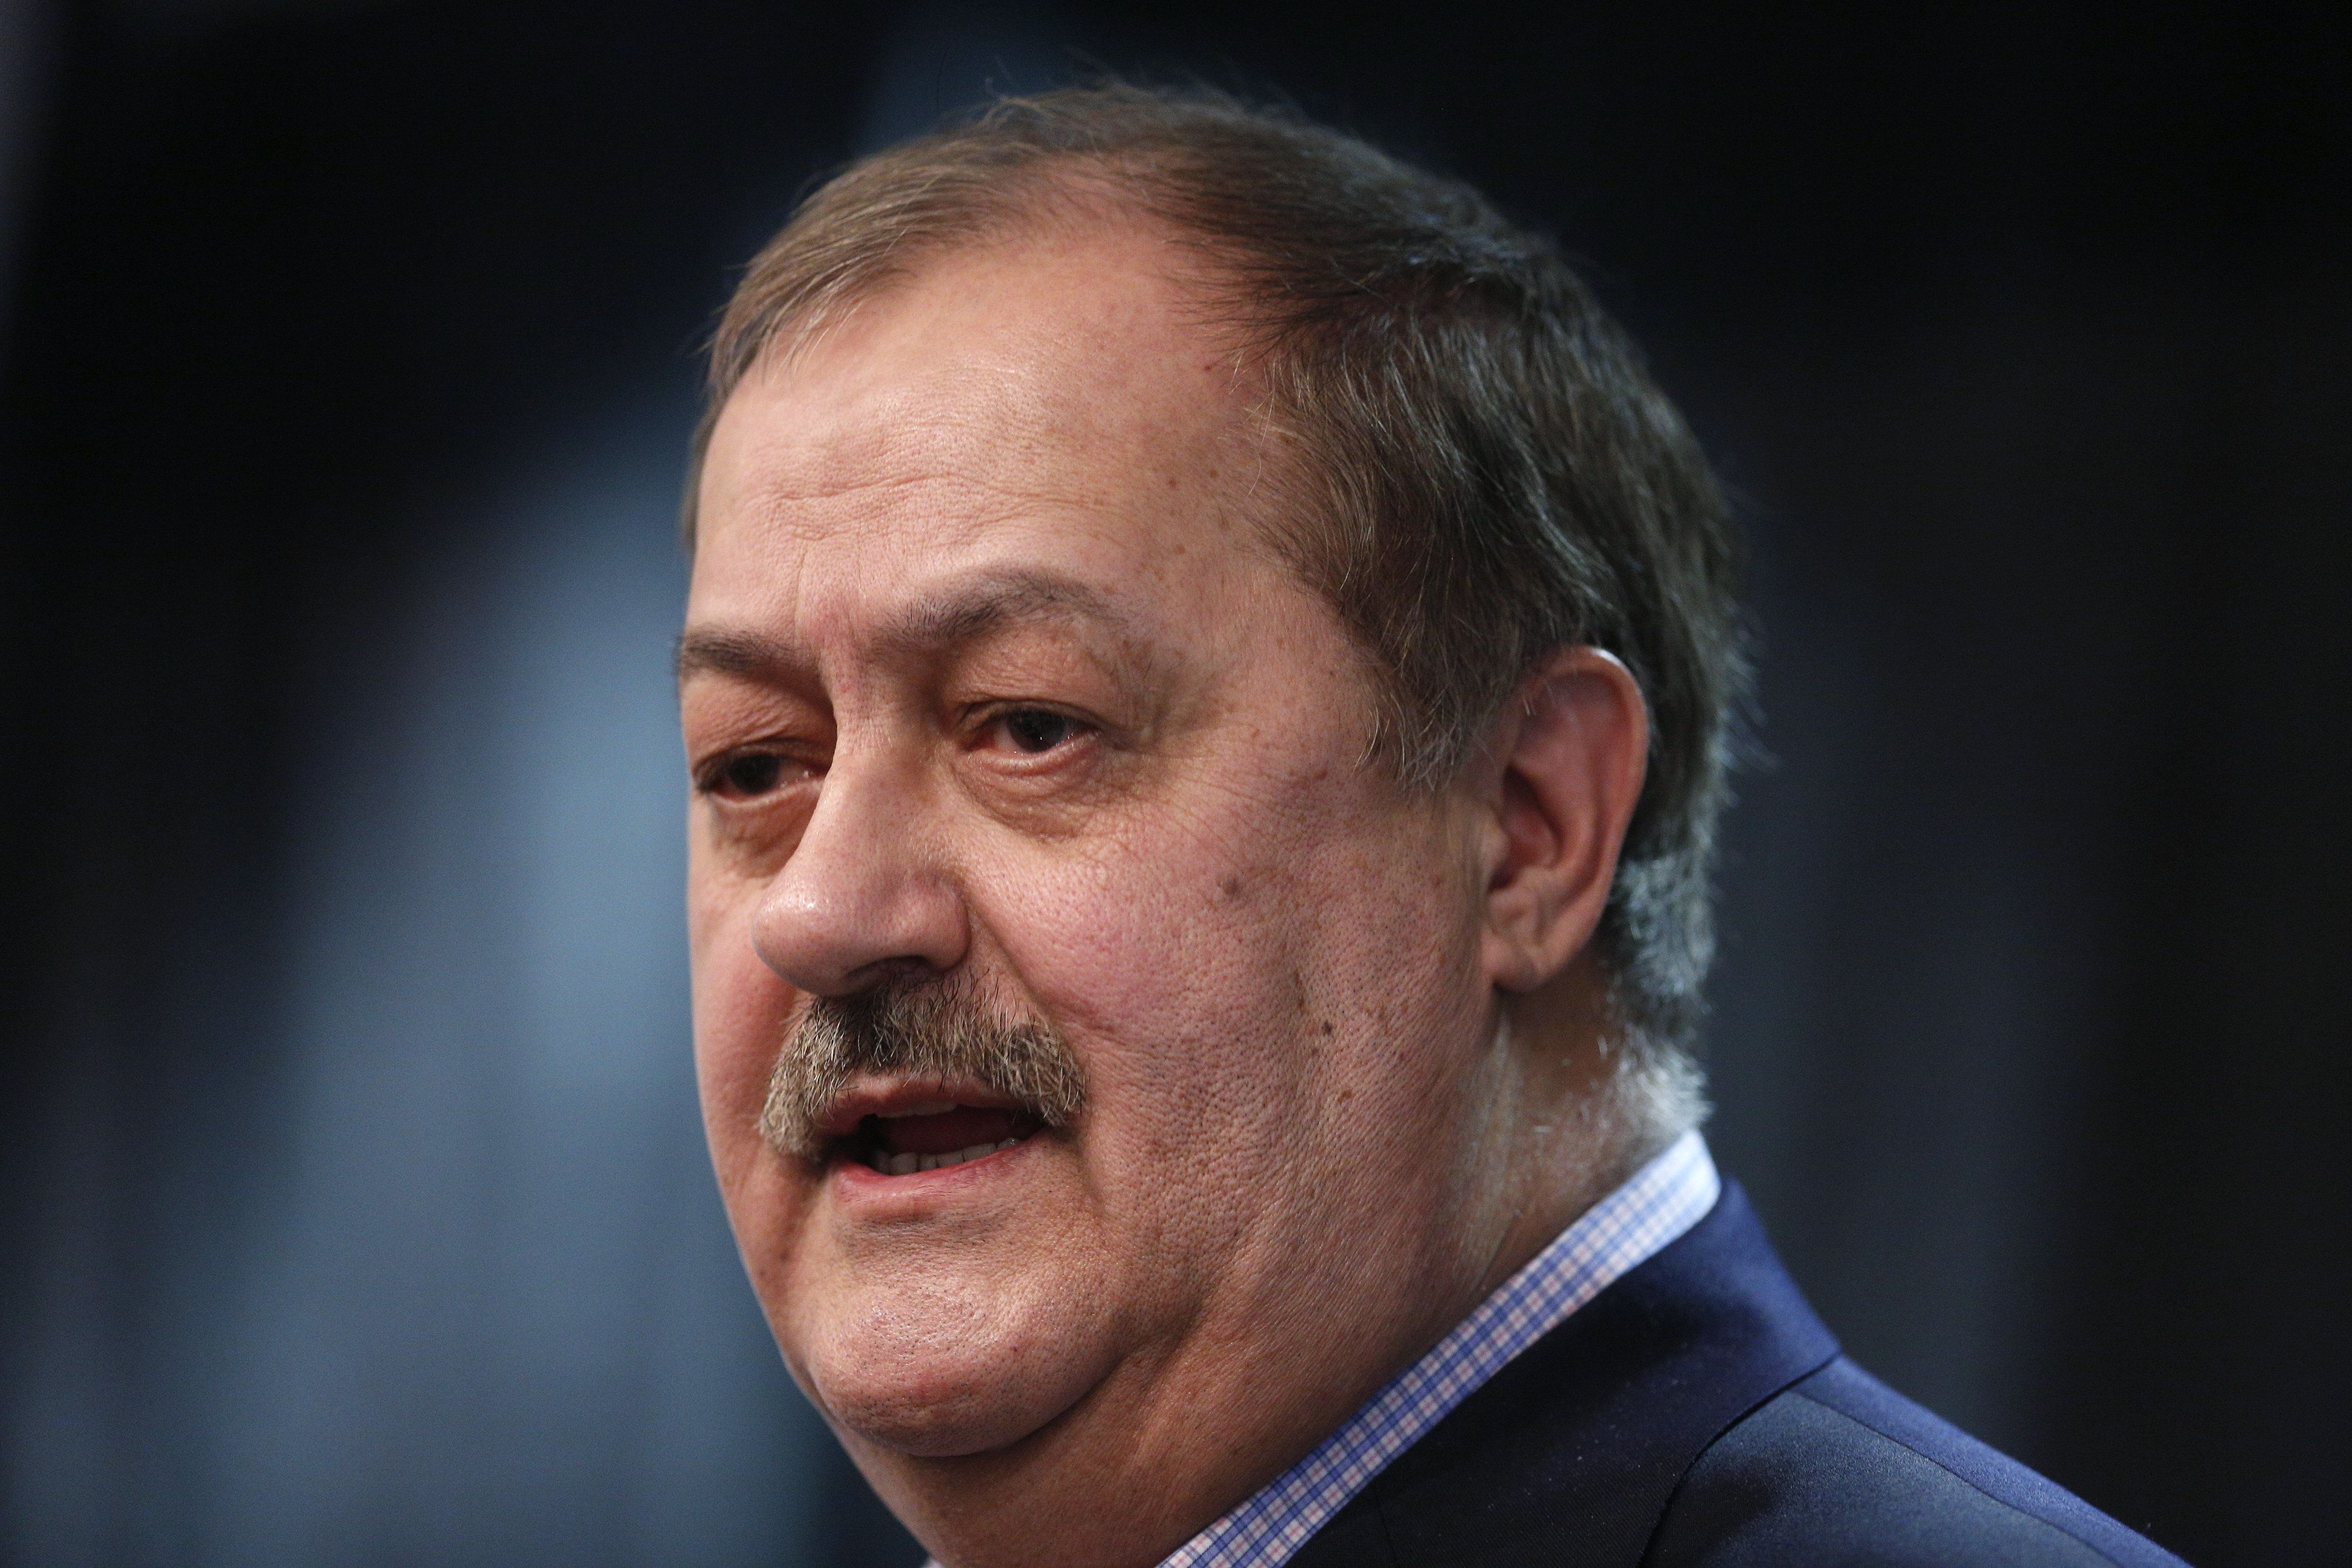 Former Massey Energy CEO Don Blankenship, a Republican U.S. Senate candidate from West Virginia, at a...